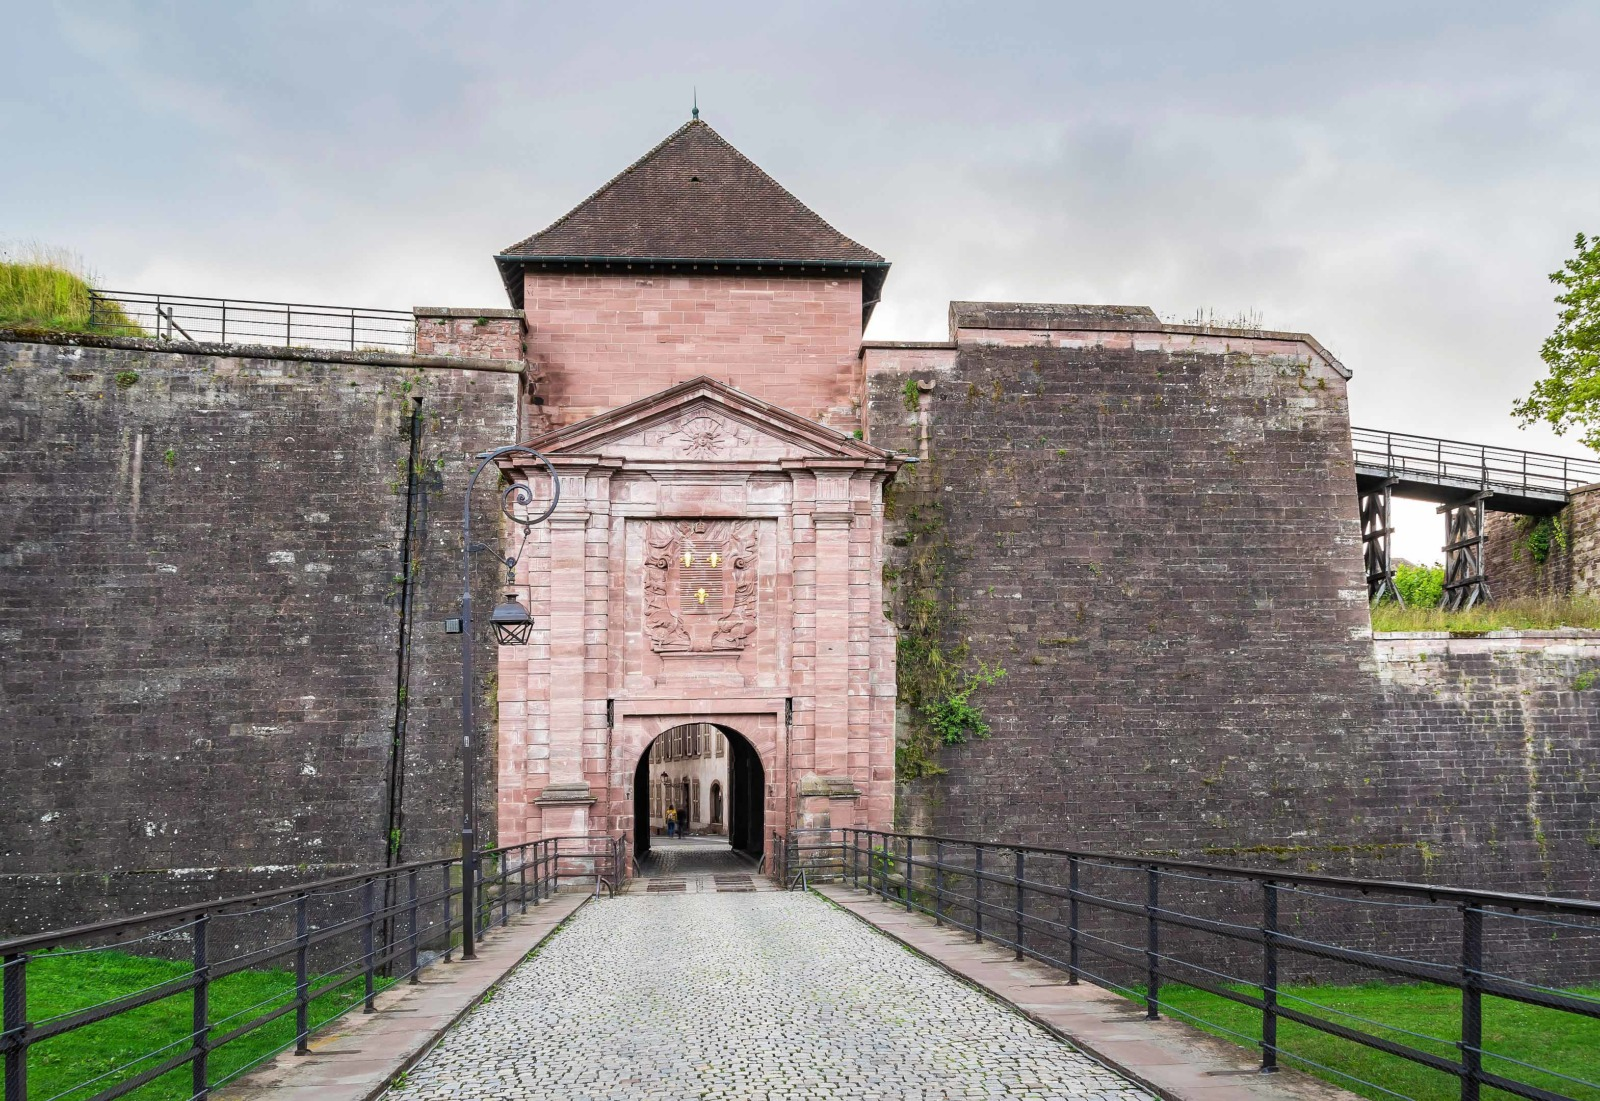 Fortified City Gates of Alsace - Porte de Brisach, Belfort © Krzysztof Golik - licence [CC BY-SA 4.0] from Wikimedia Commons